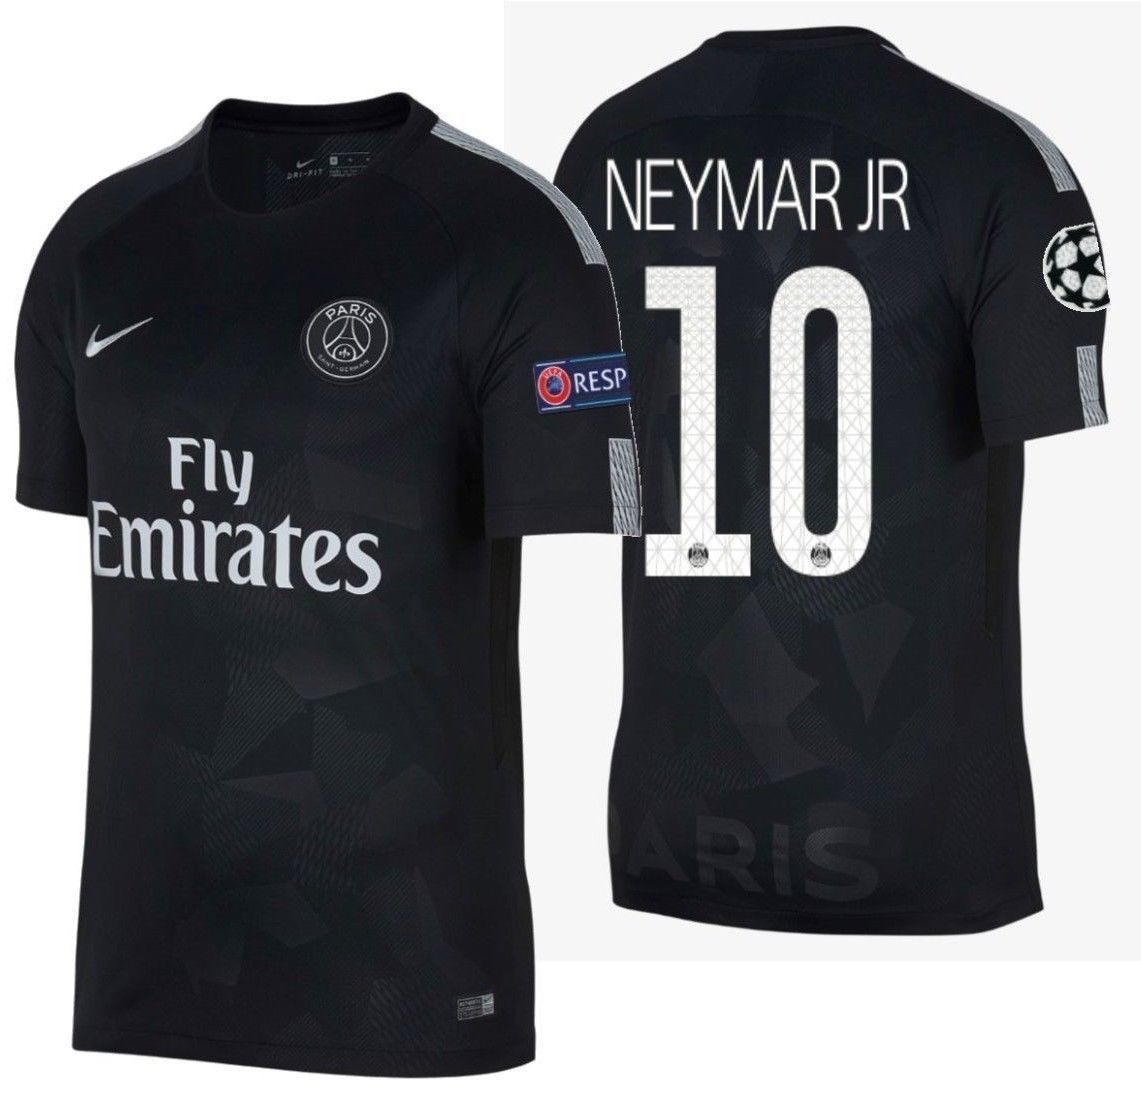 NIKE NEYMAR JR. PARIS SAINT-GERMAIN PSG UEFA CHAMPIONS LEAGUE THIRD JERSEY  2017/